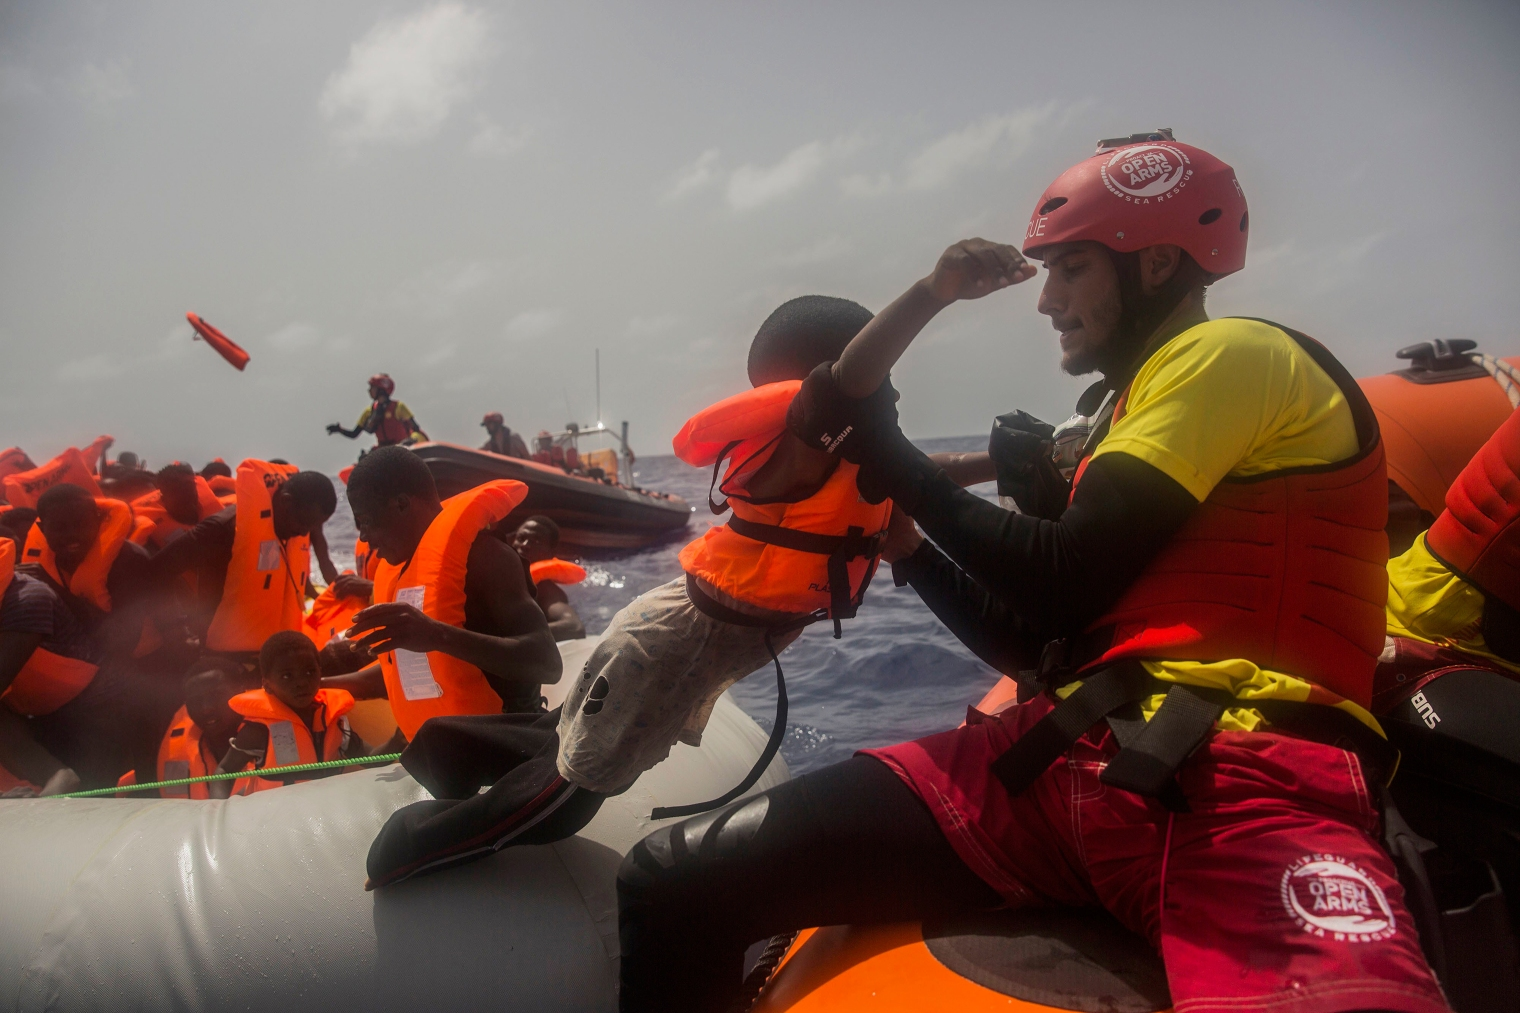 A child is helped by an aid worker during the rescue.